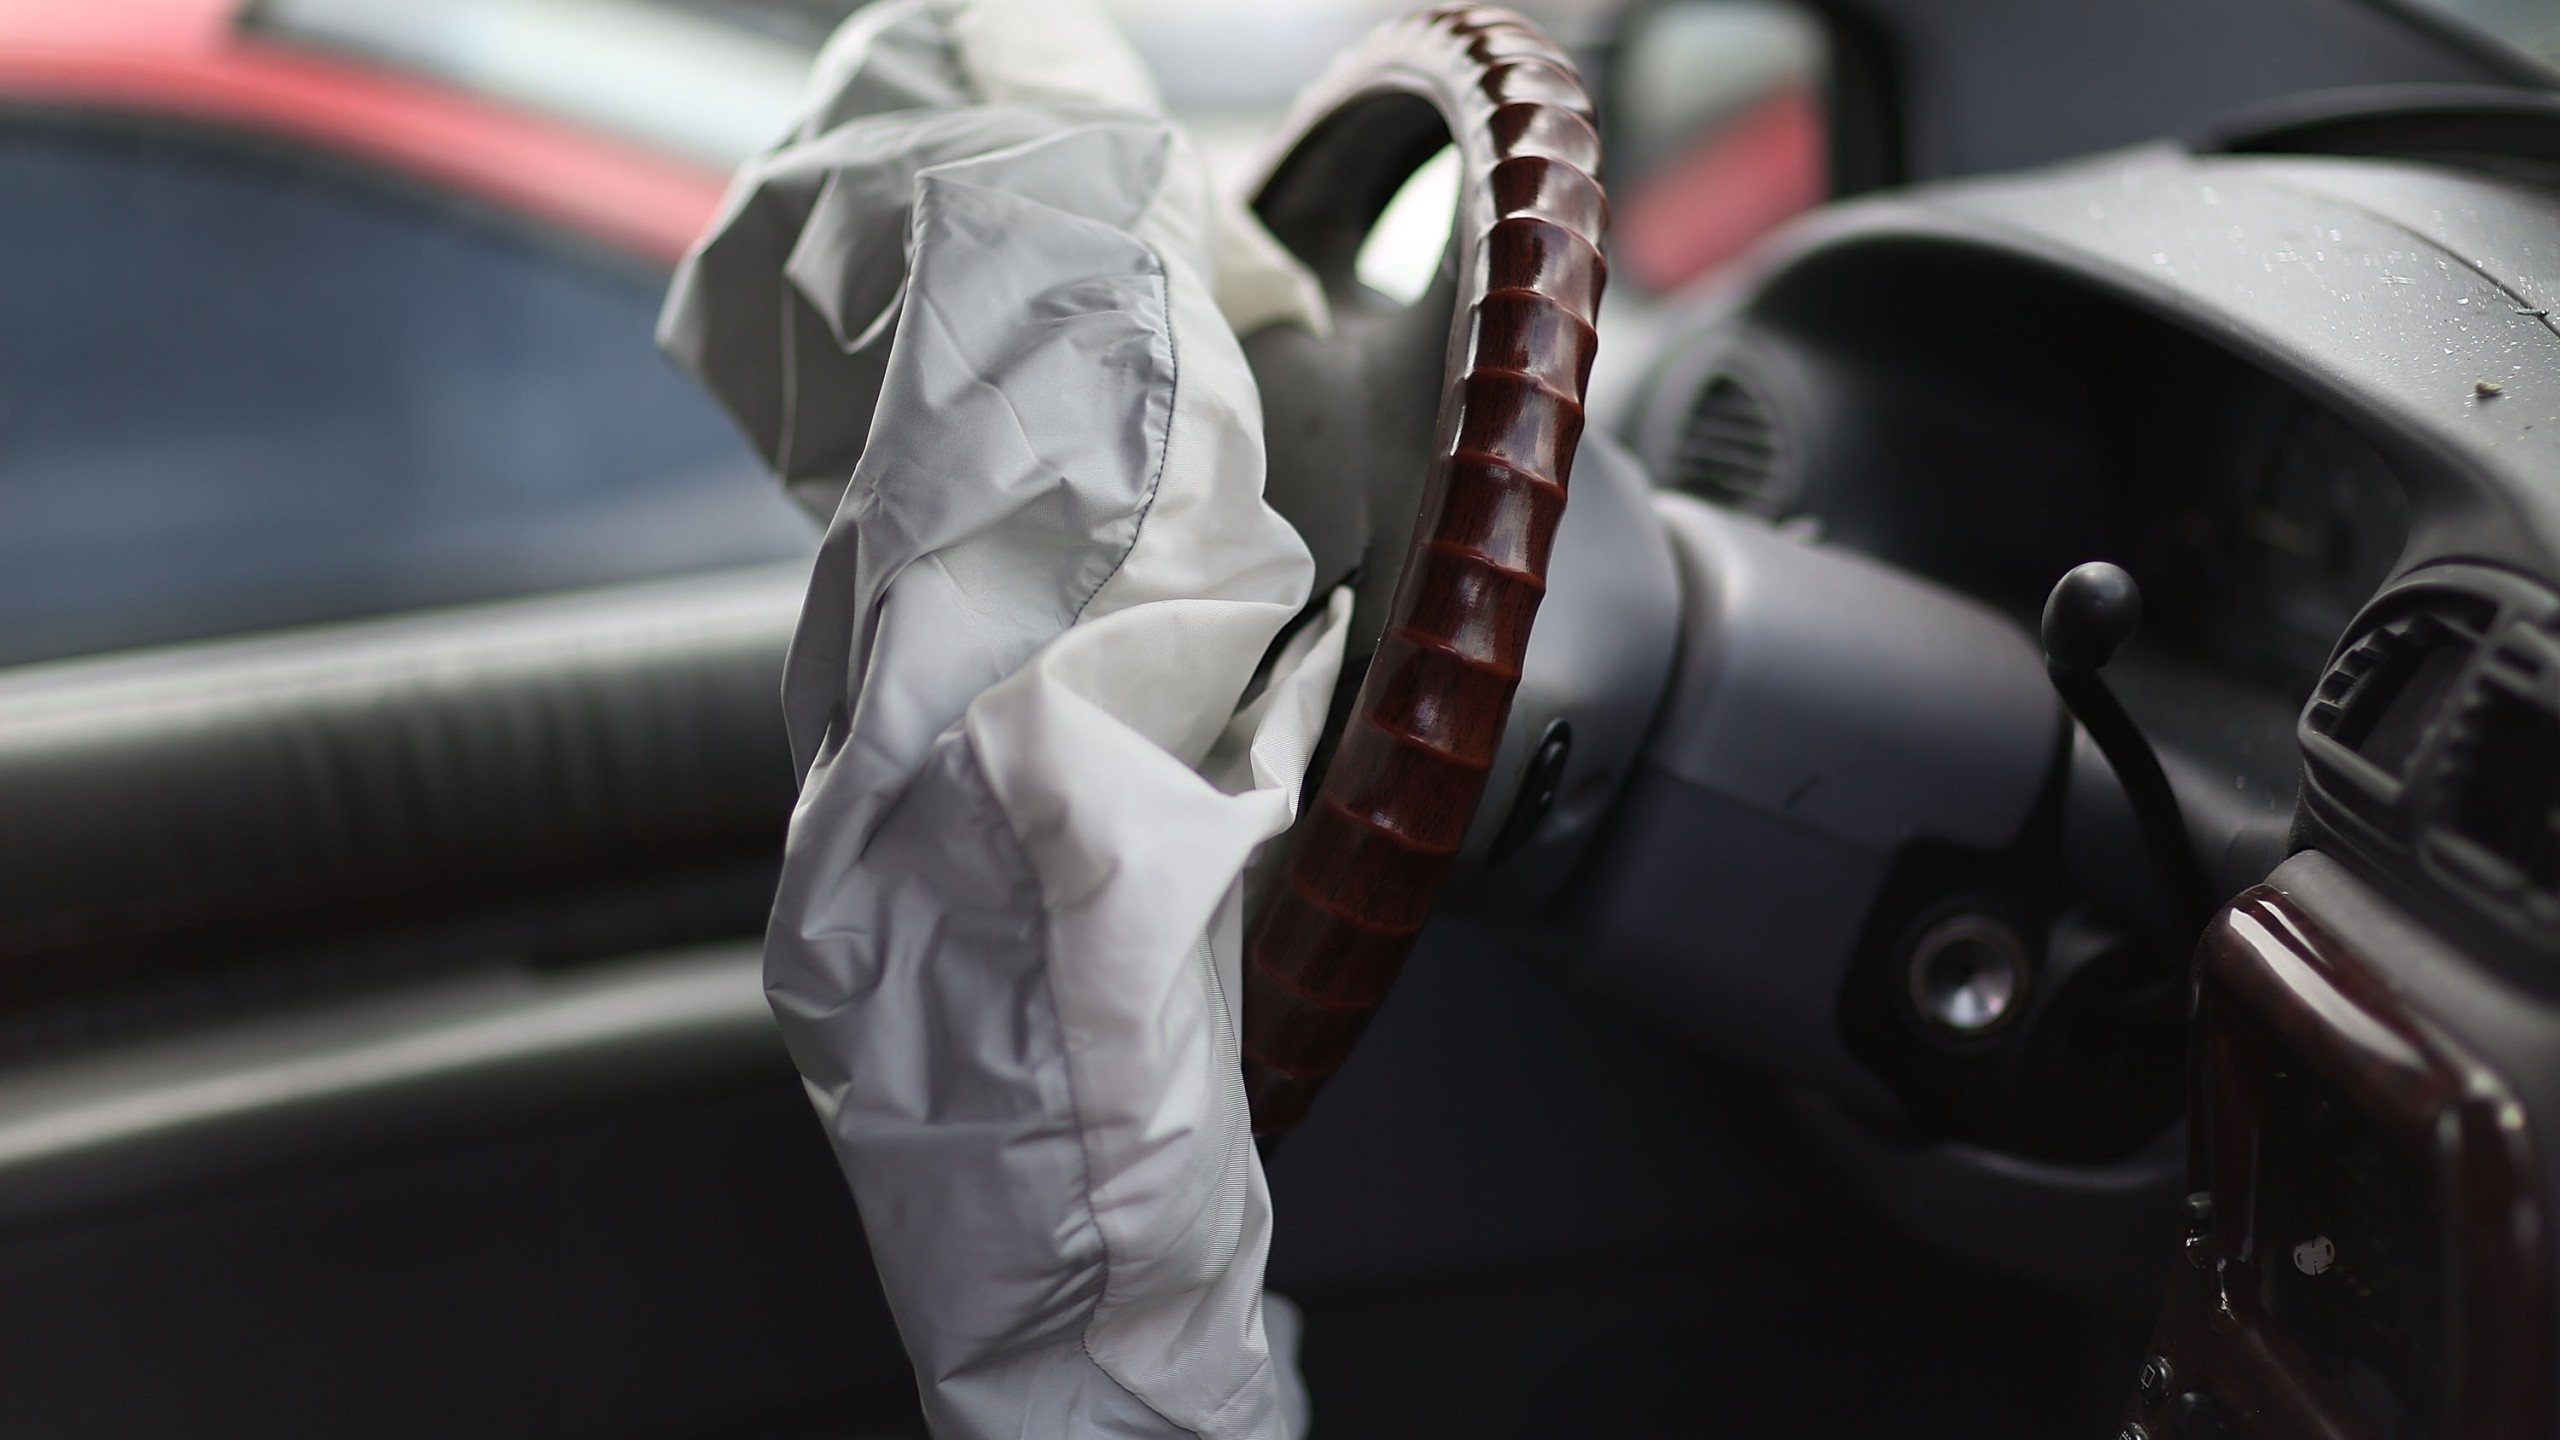 A deployed airbag is seen in this file photo. (Credit: Joe Raedle/Getty Images)